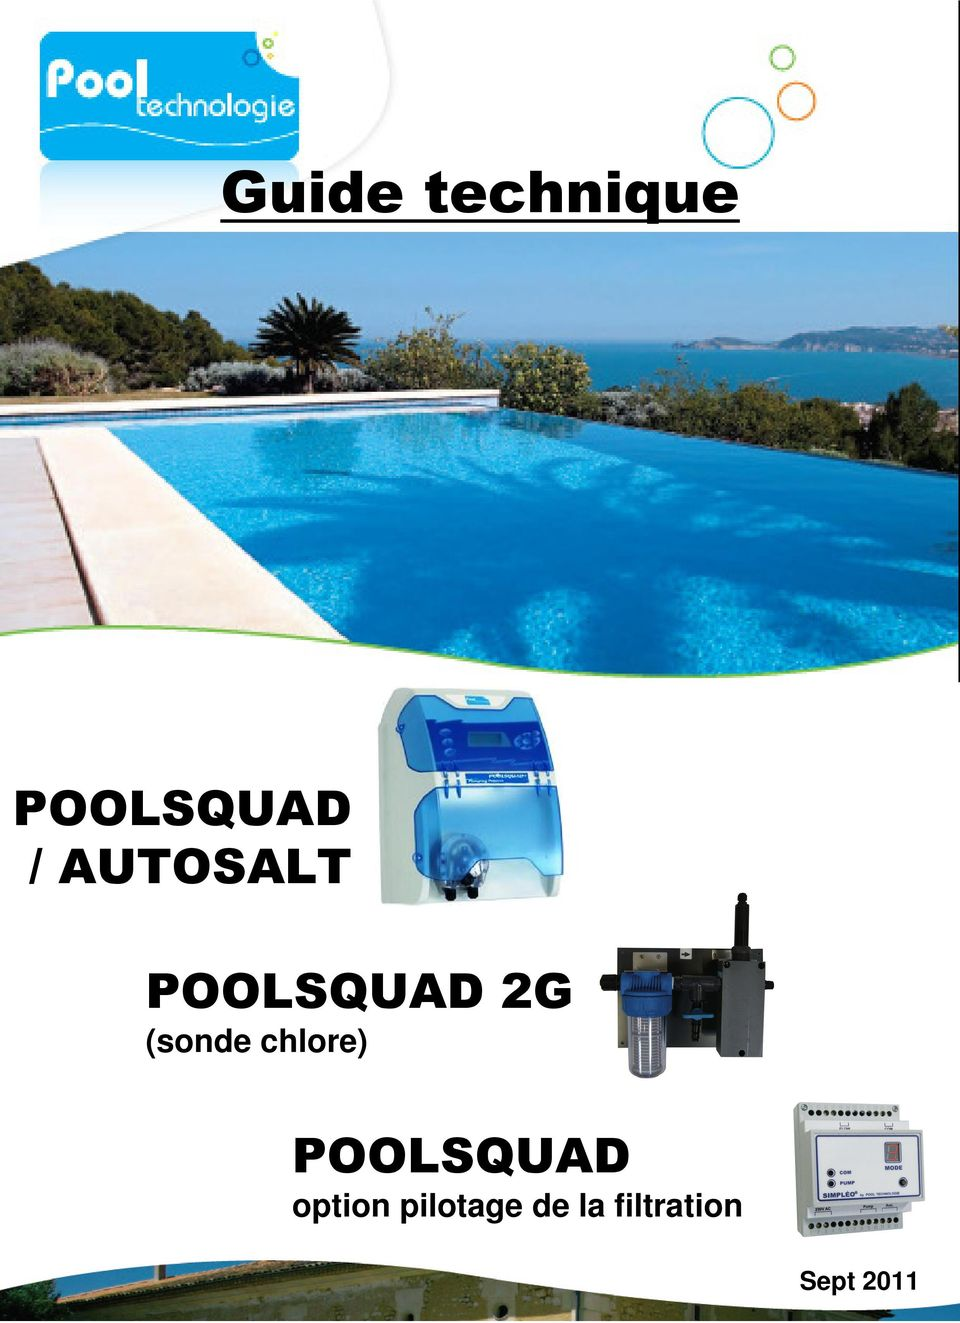 chlore) POOLSQUAD option